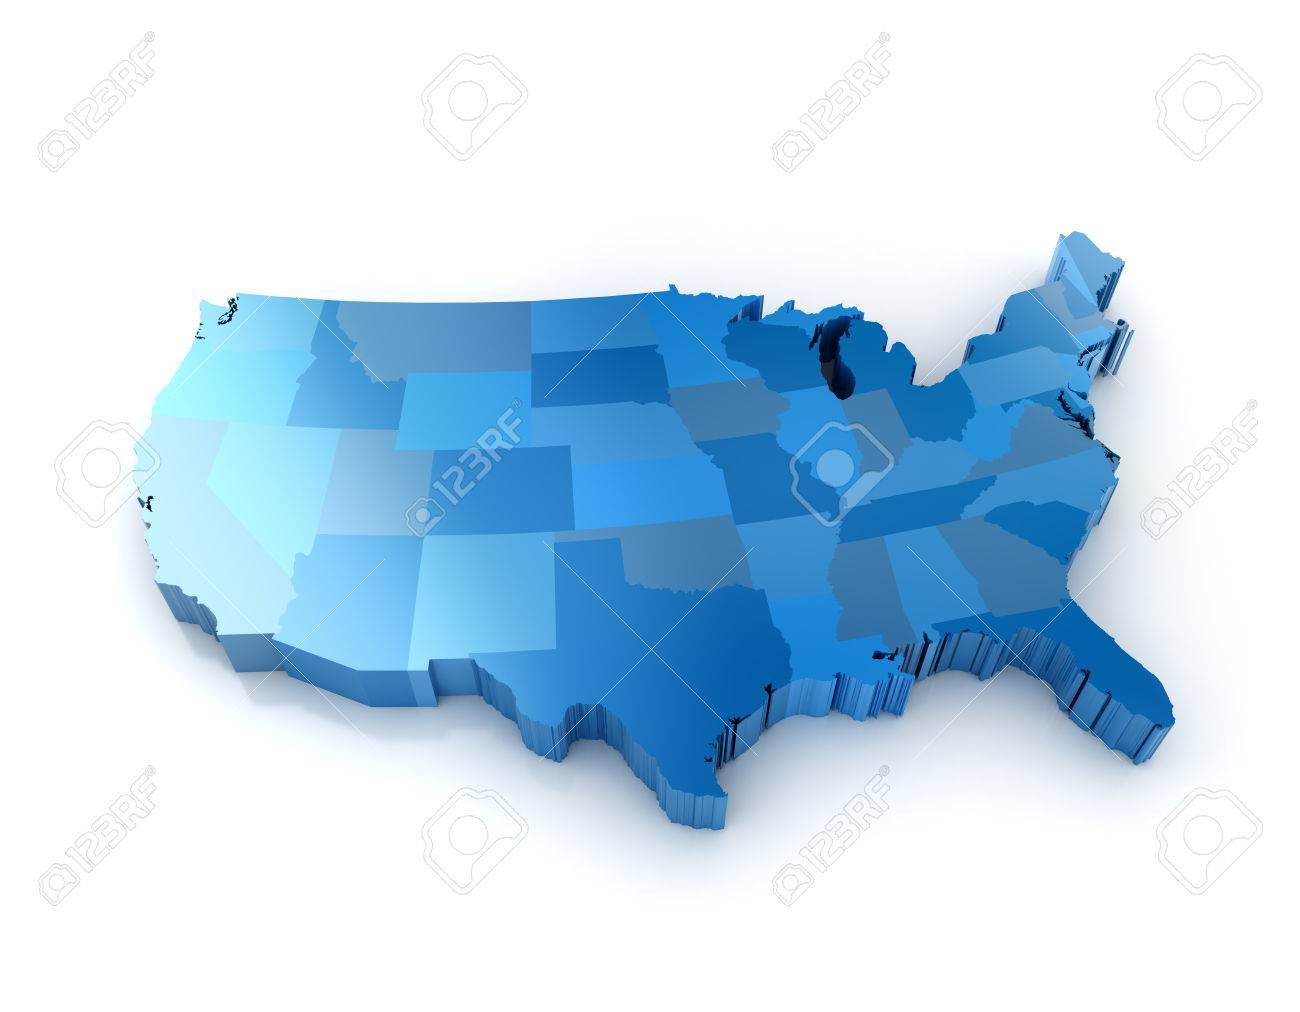 Us Map Stock Vector Illustration And Royalty Free Us Map - Us 3d map